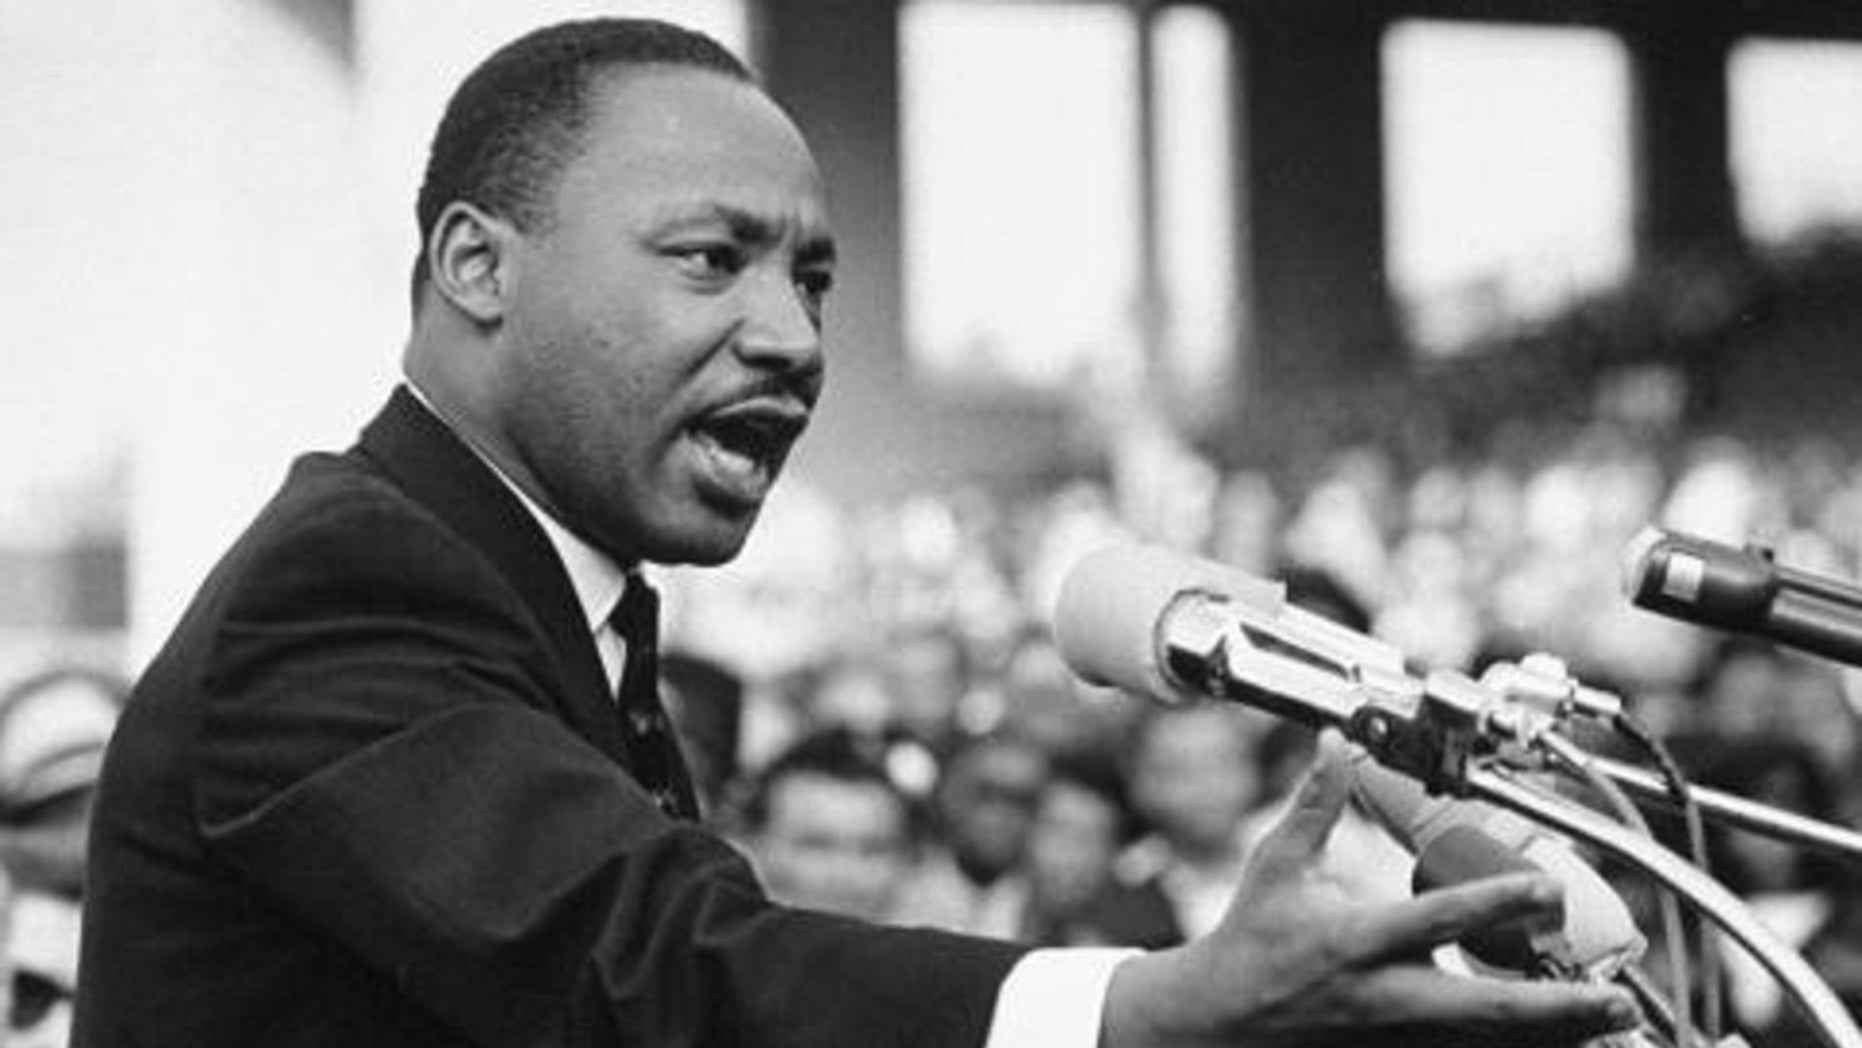 """Dr. Martin Luther King, Jr. delivering his """"I Have a Dream"""" speech in Washington, D.C."""